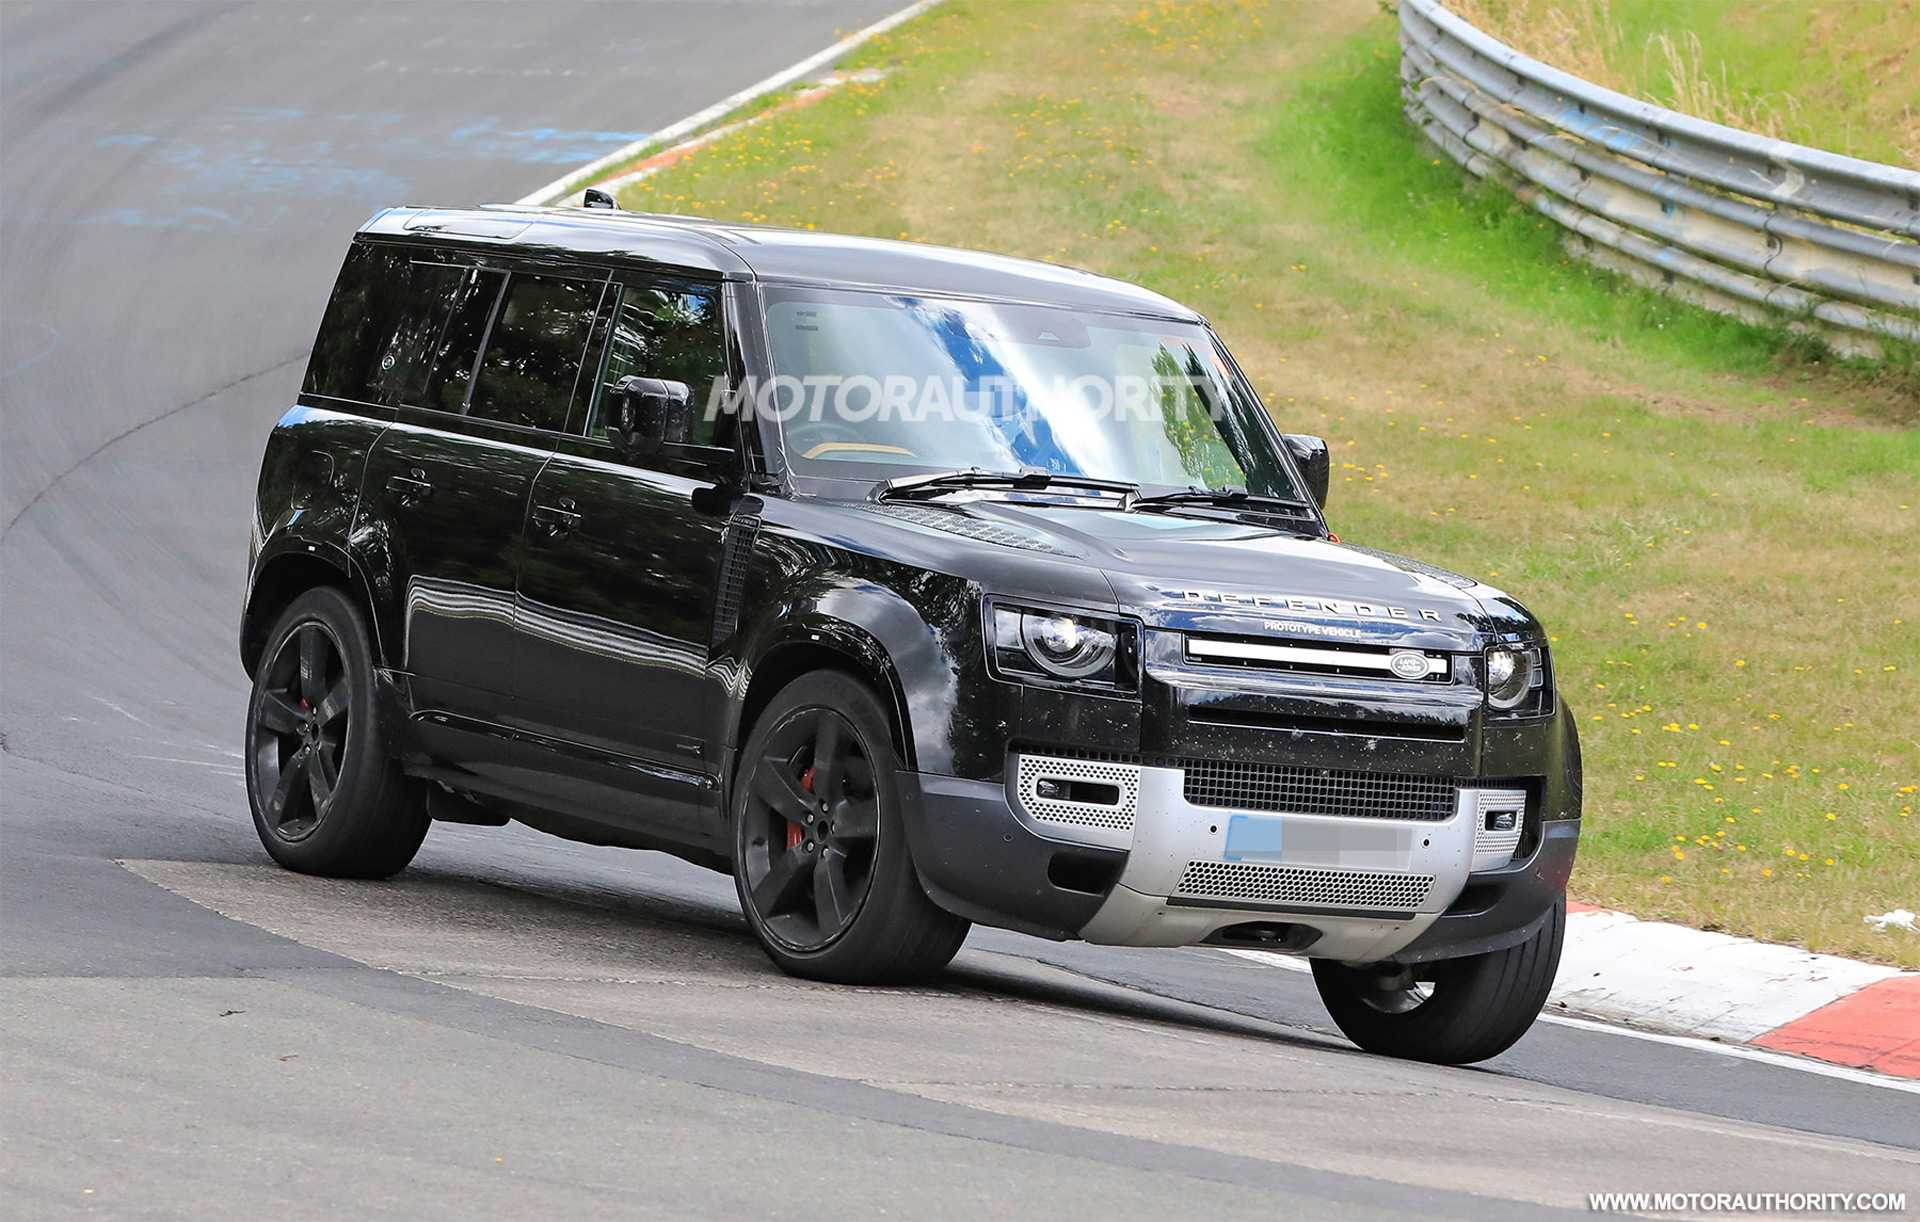 2022 Land Rover Defender V-8 Spotted in New Spy Photos